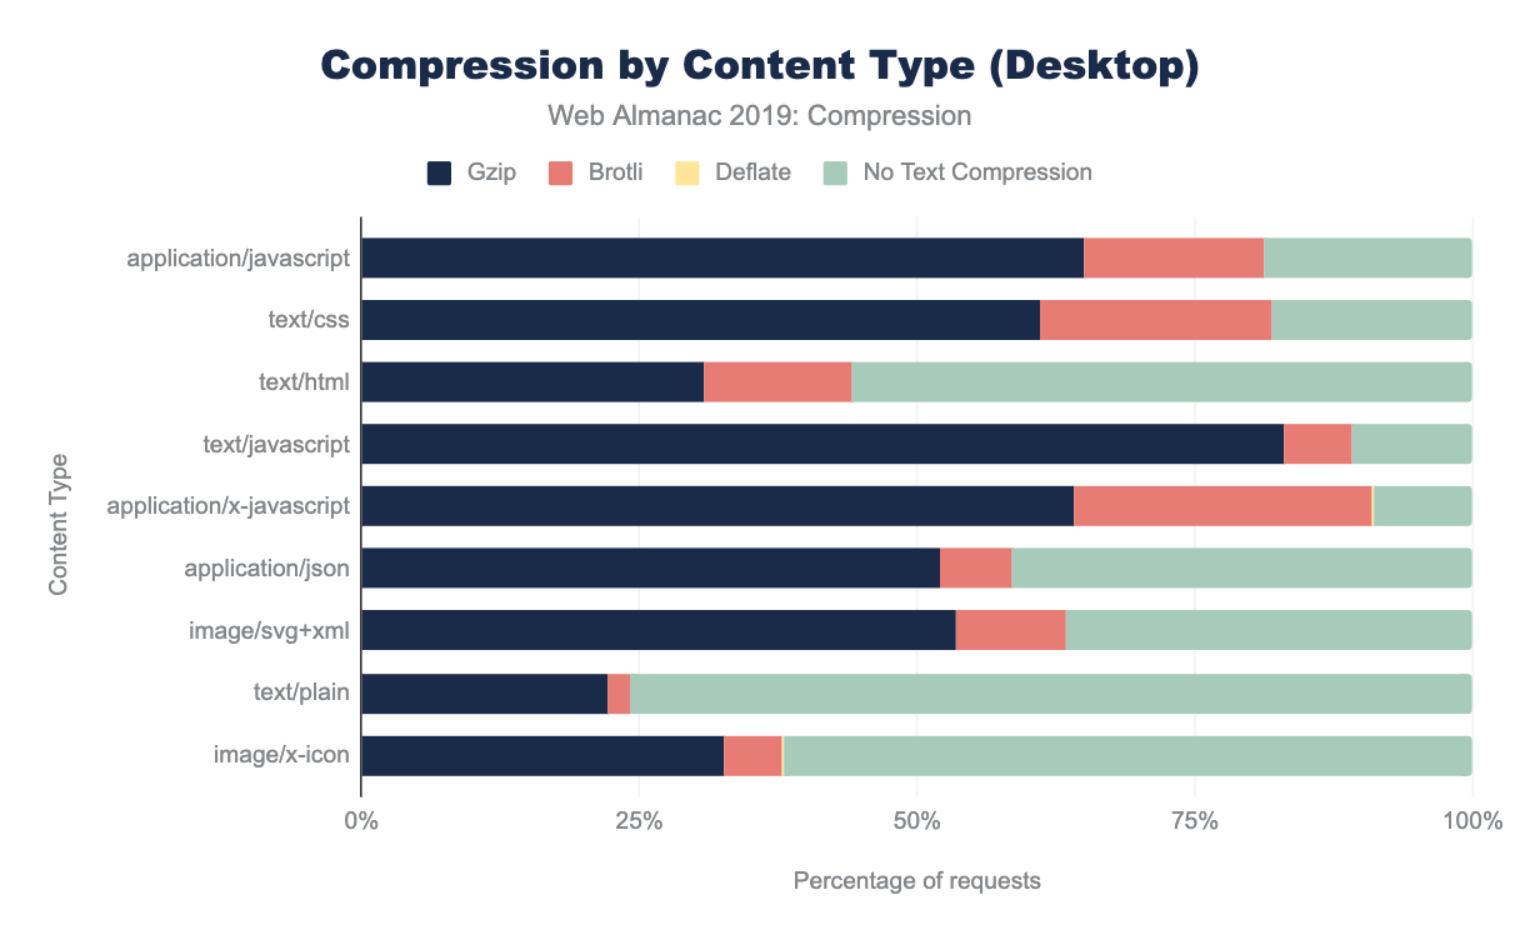 Figure 7. Compression by content type as a percent for desktop.